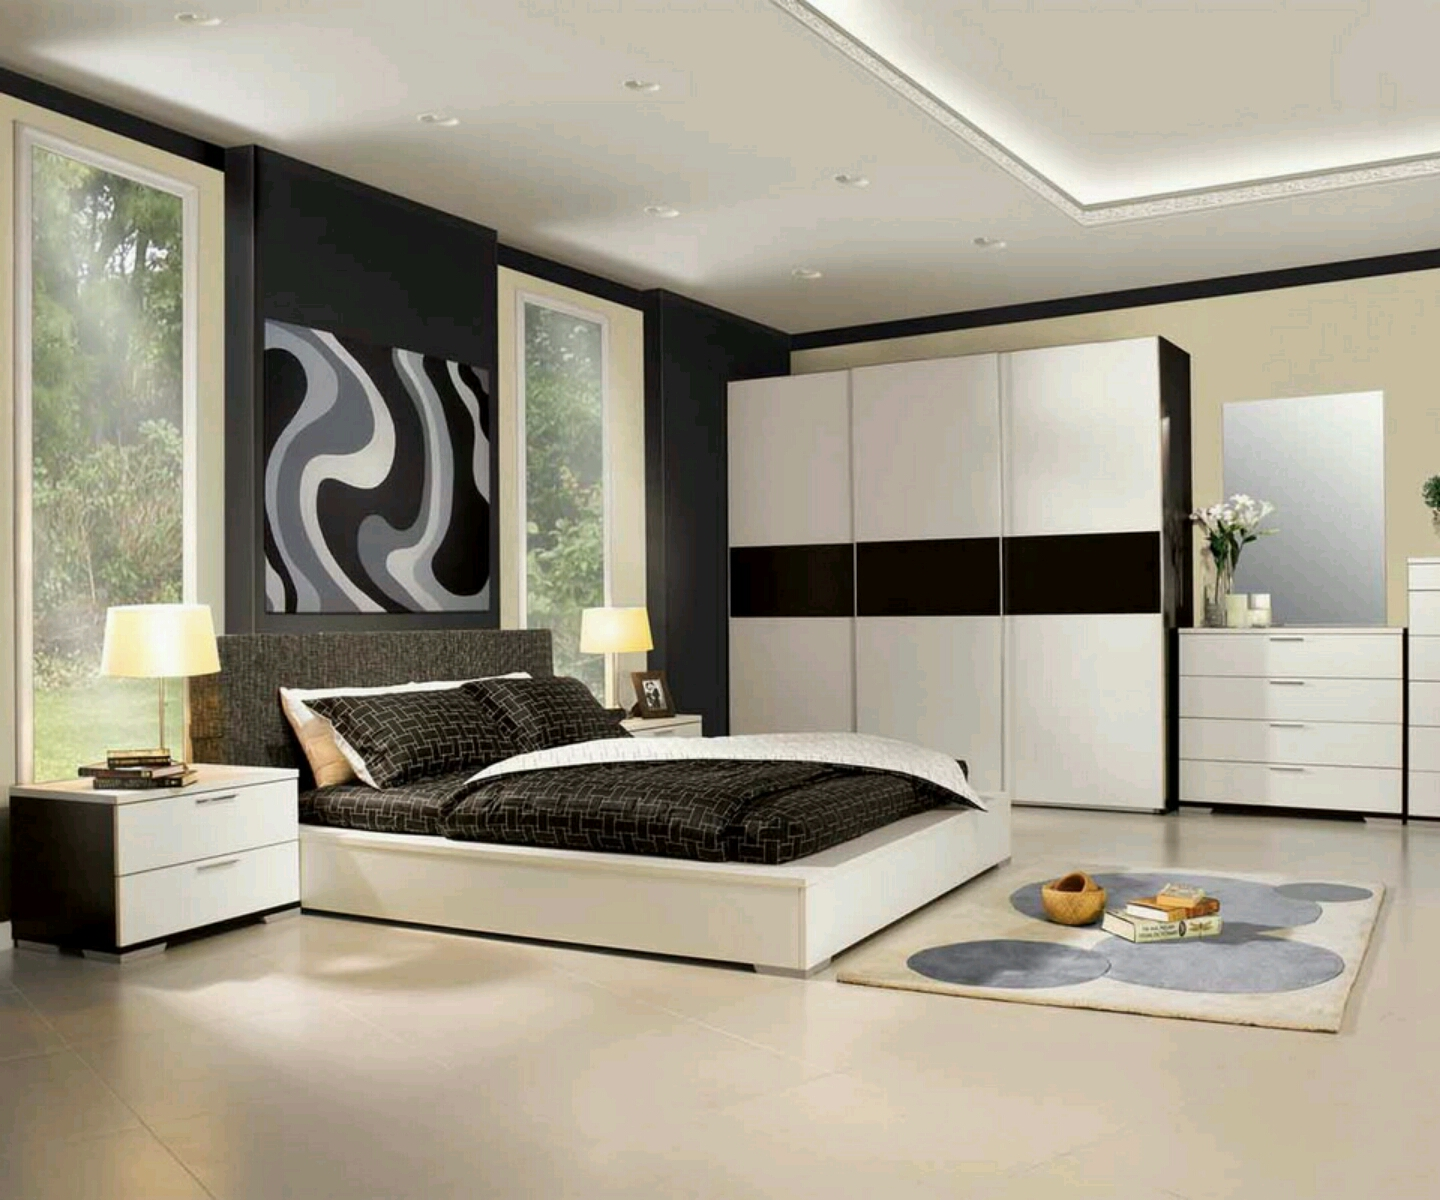 modern luxury bedroom furniture designs ideas vintage romantic home rh vintageromantichome blogspot com